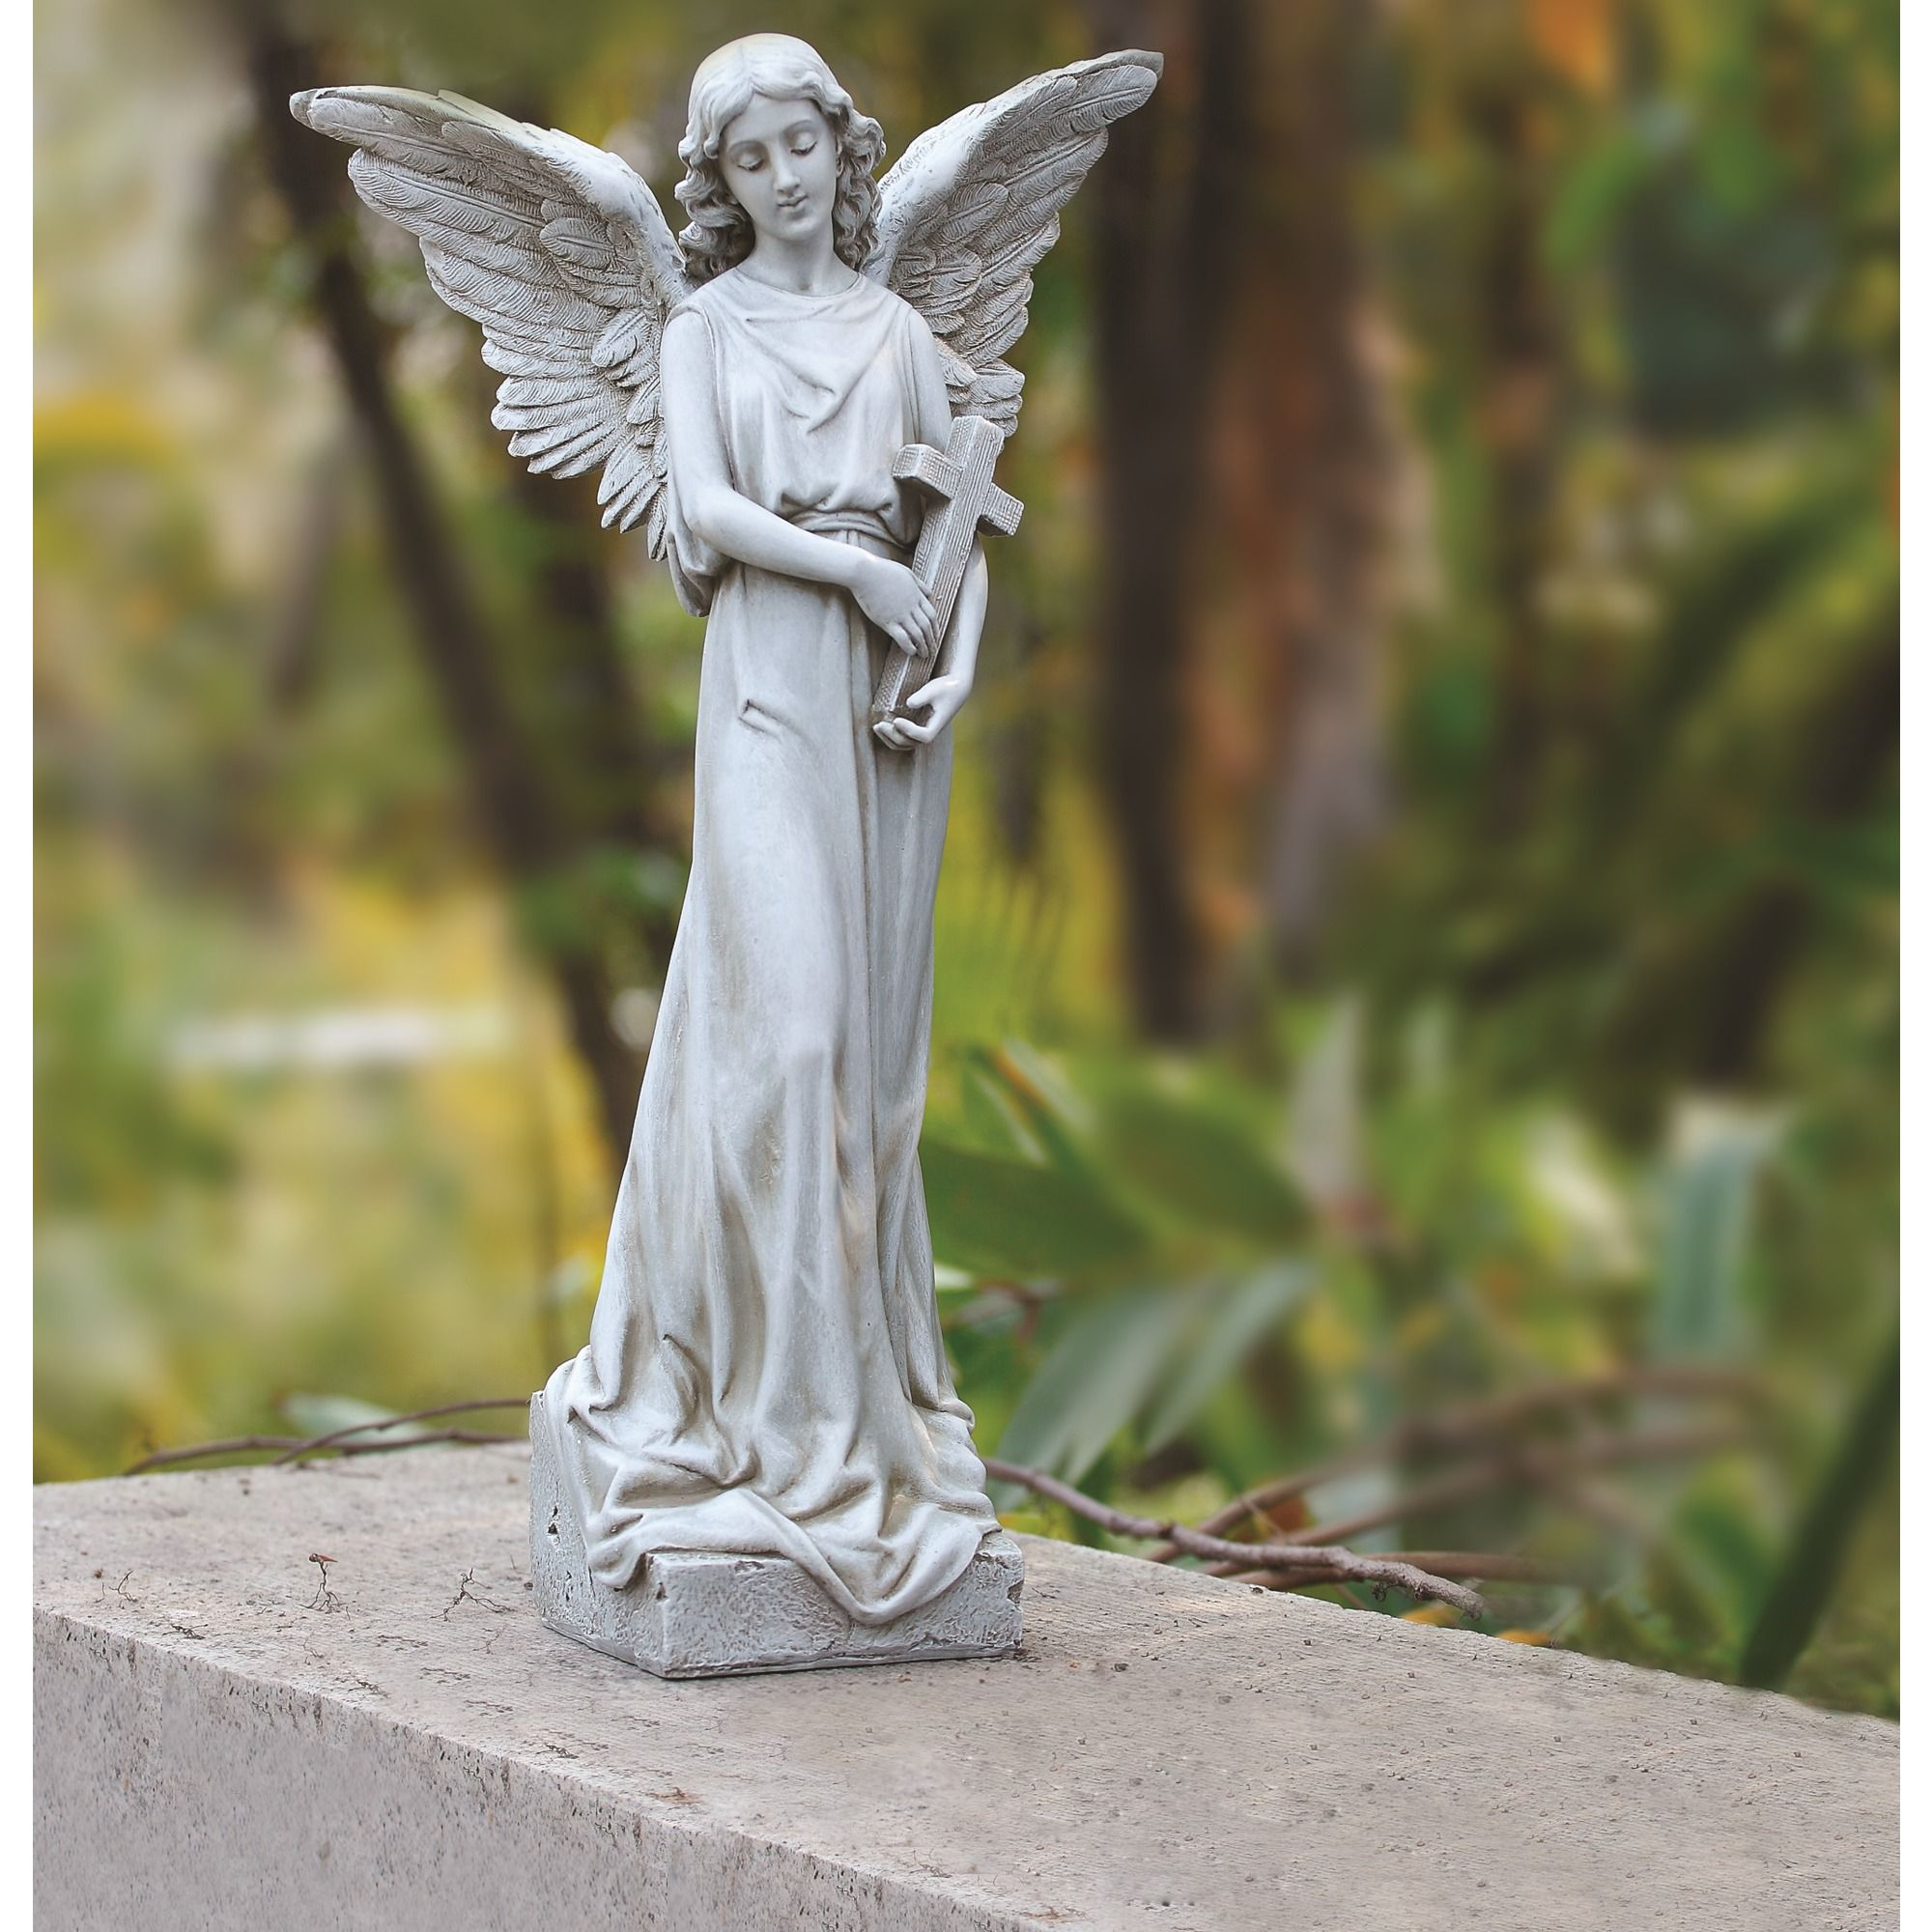 Small Angel Statues For Graves: A Lovely Memorial Gift To Keep In The Garden In Memory Of